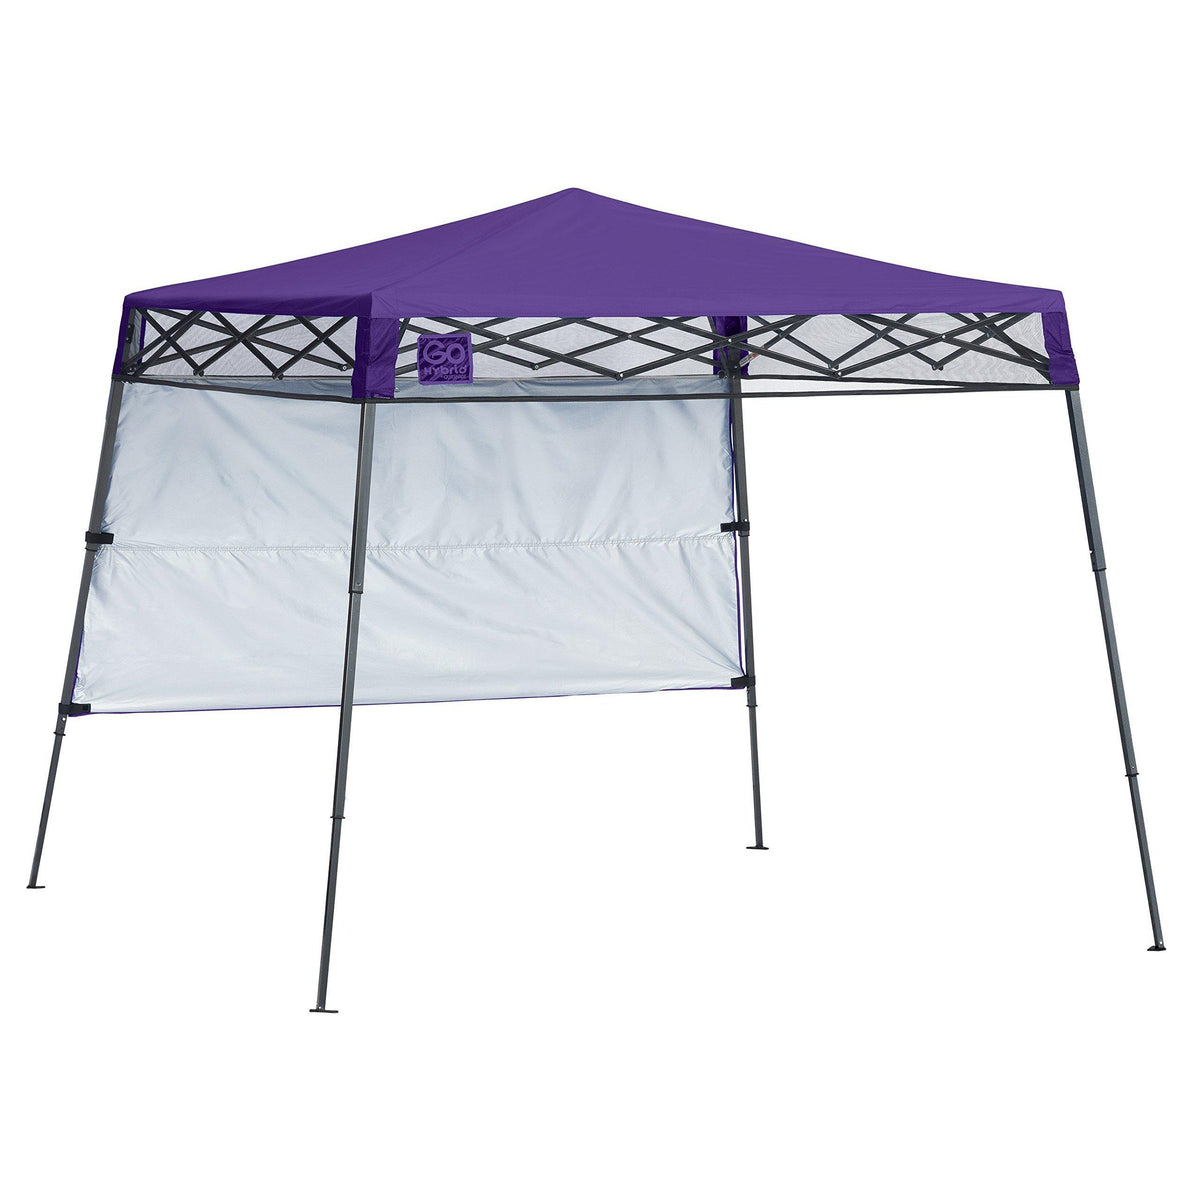 Quik Shade 7' x 7' Go Hybrid Pop-Up Compact and Lightweight Slant Leg Backpack Canopy